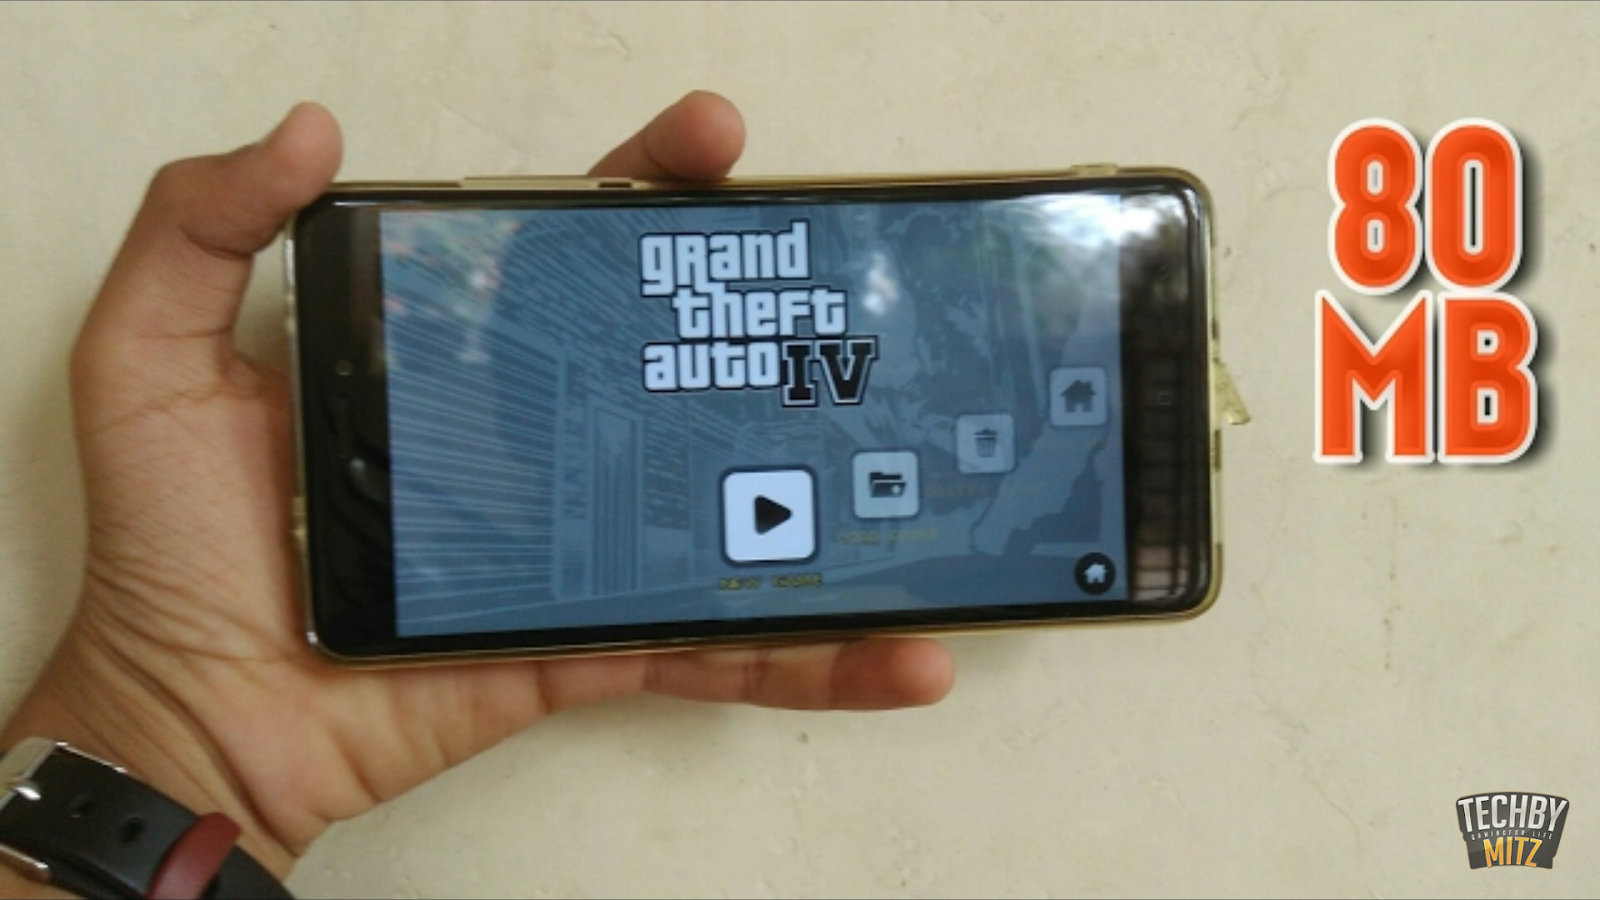 GTA 4 Mod Download For Android | GTA IV Mod Apk+Data